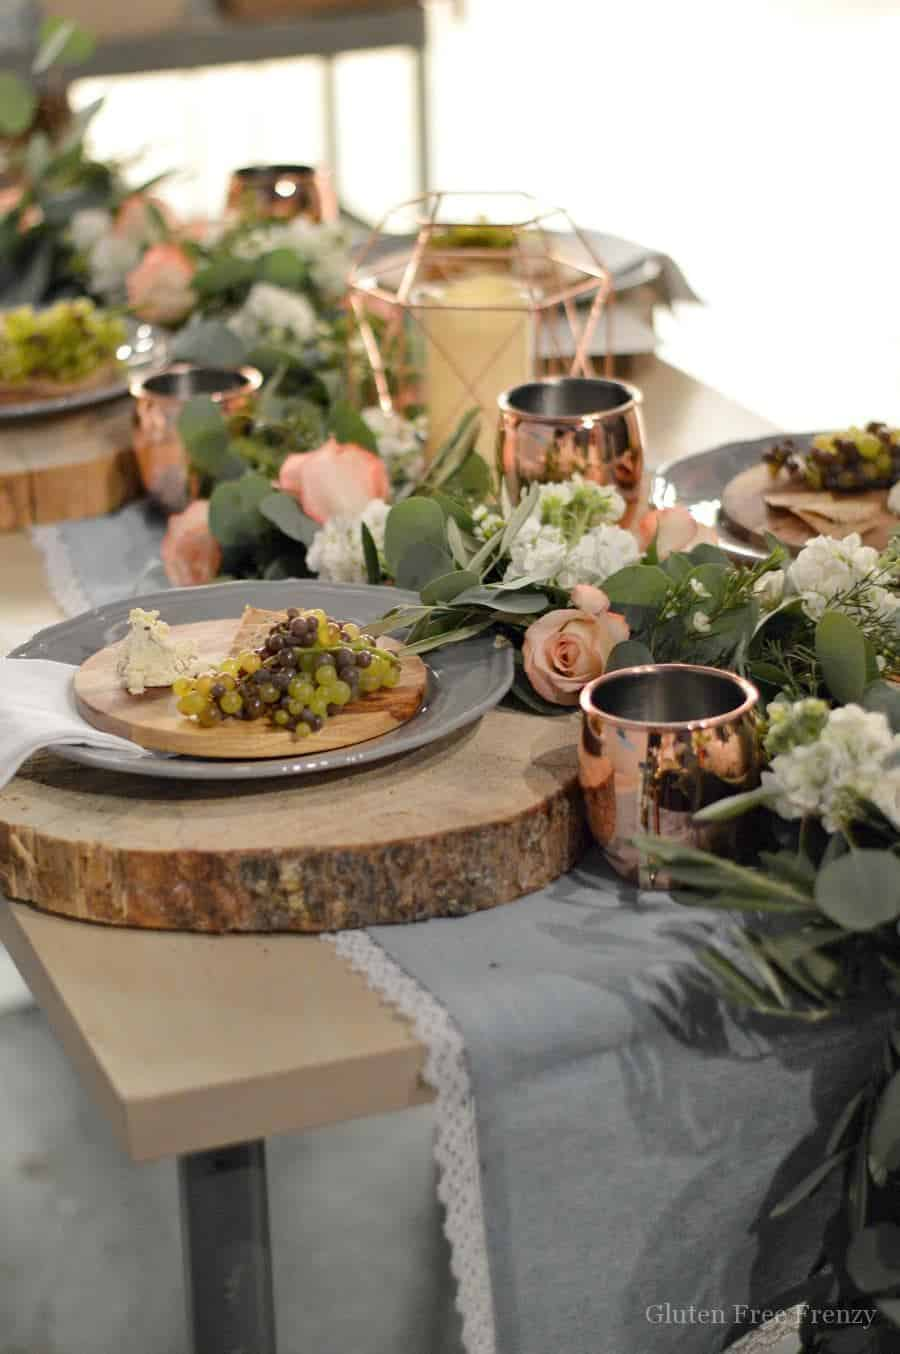 Styling an Al Fresco Dinner Party (Video Included)